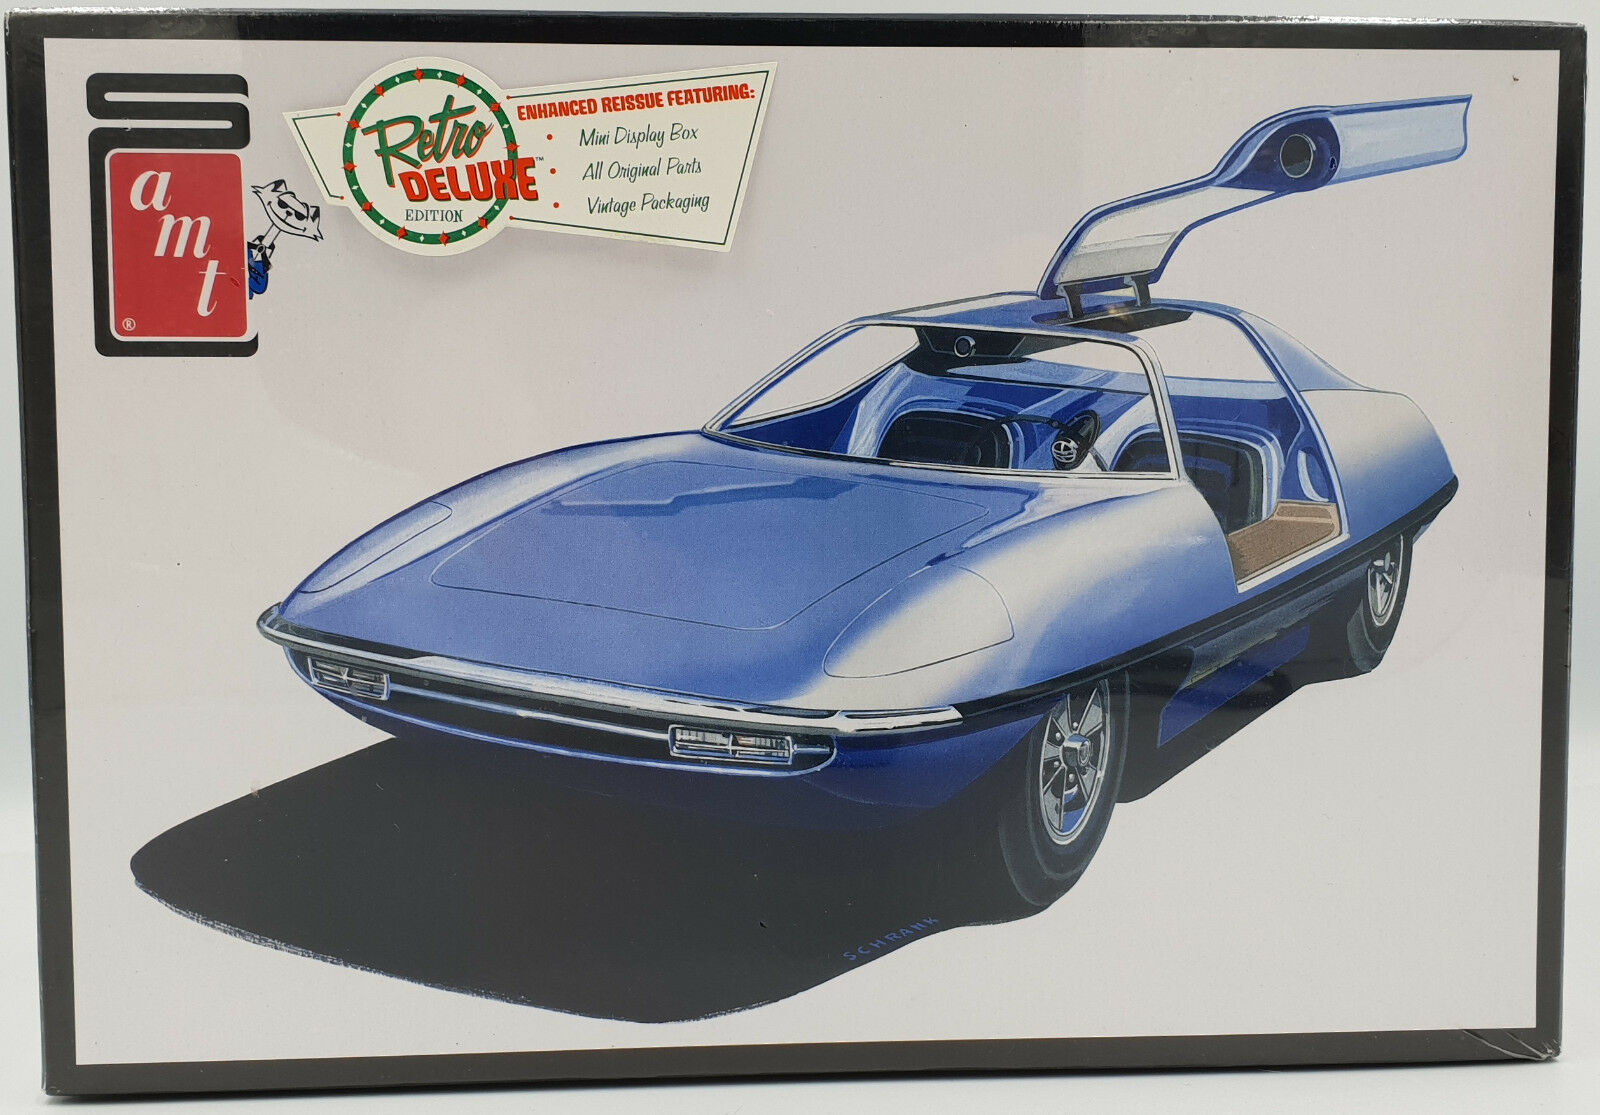 CARS   PIRANHA SUPER SPY CAR 1 25 SCALE MODEL KIT MADE BY AMT IN 2015